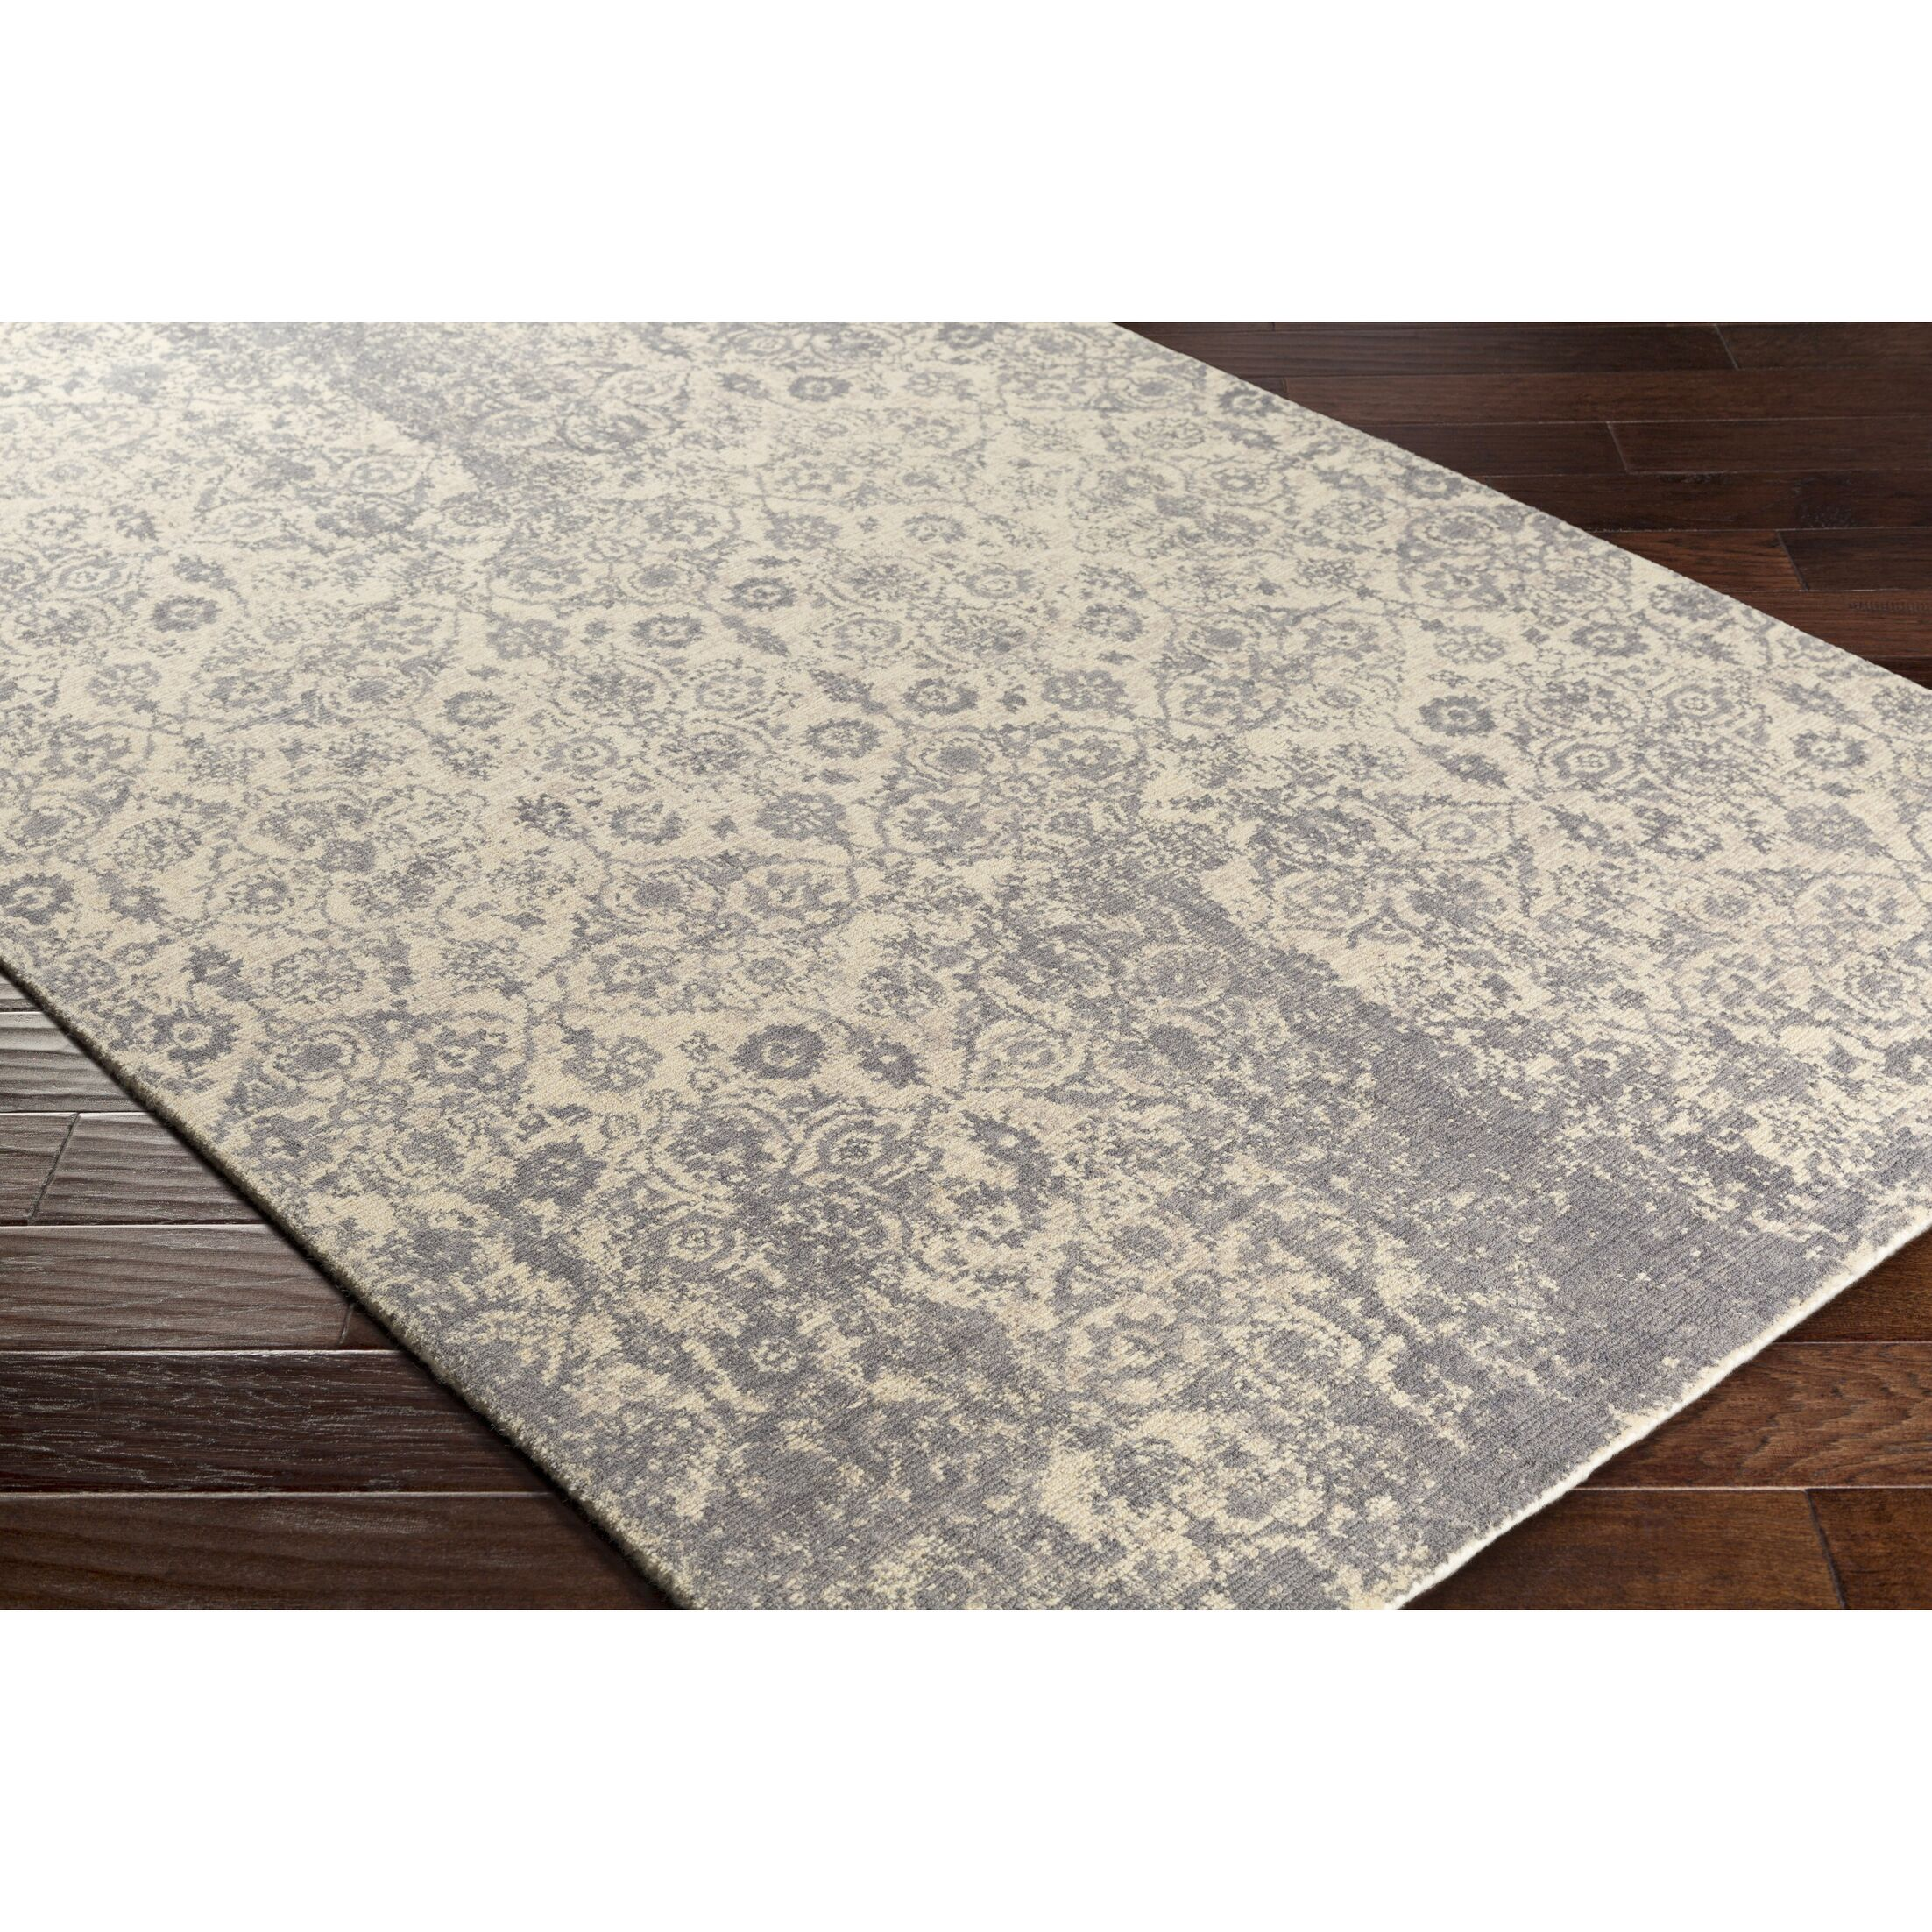 Riggins Hand-Crafted Neutral/Gray Area Rug Rug Size: Rectangle 8' x 10'